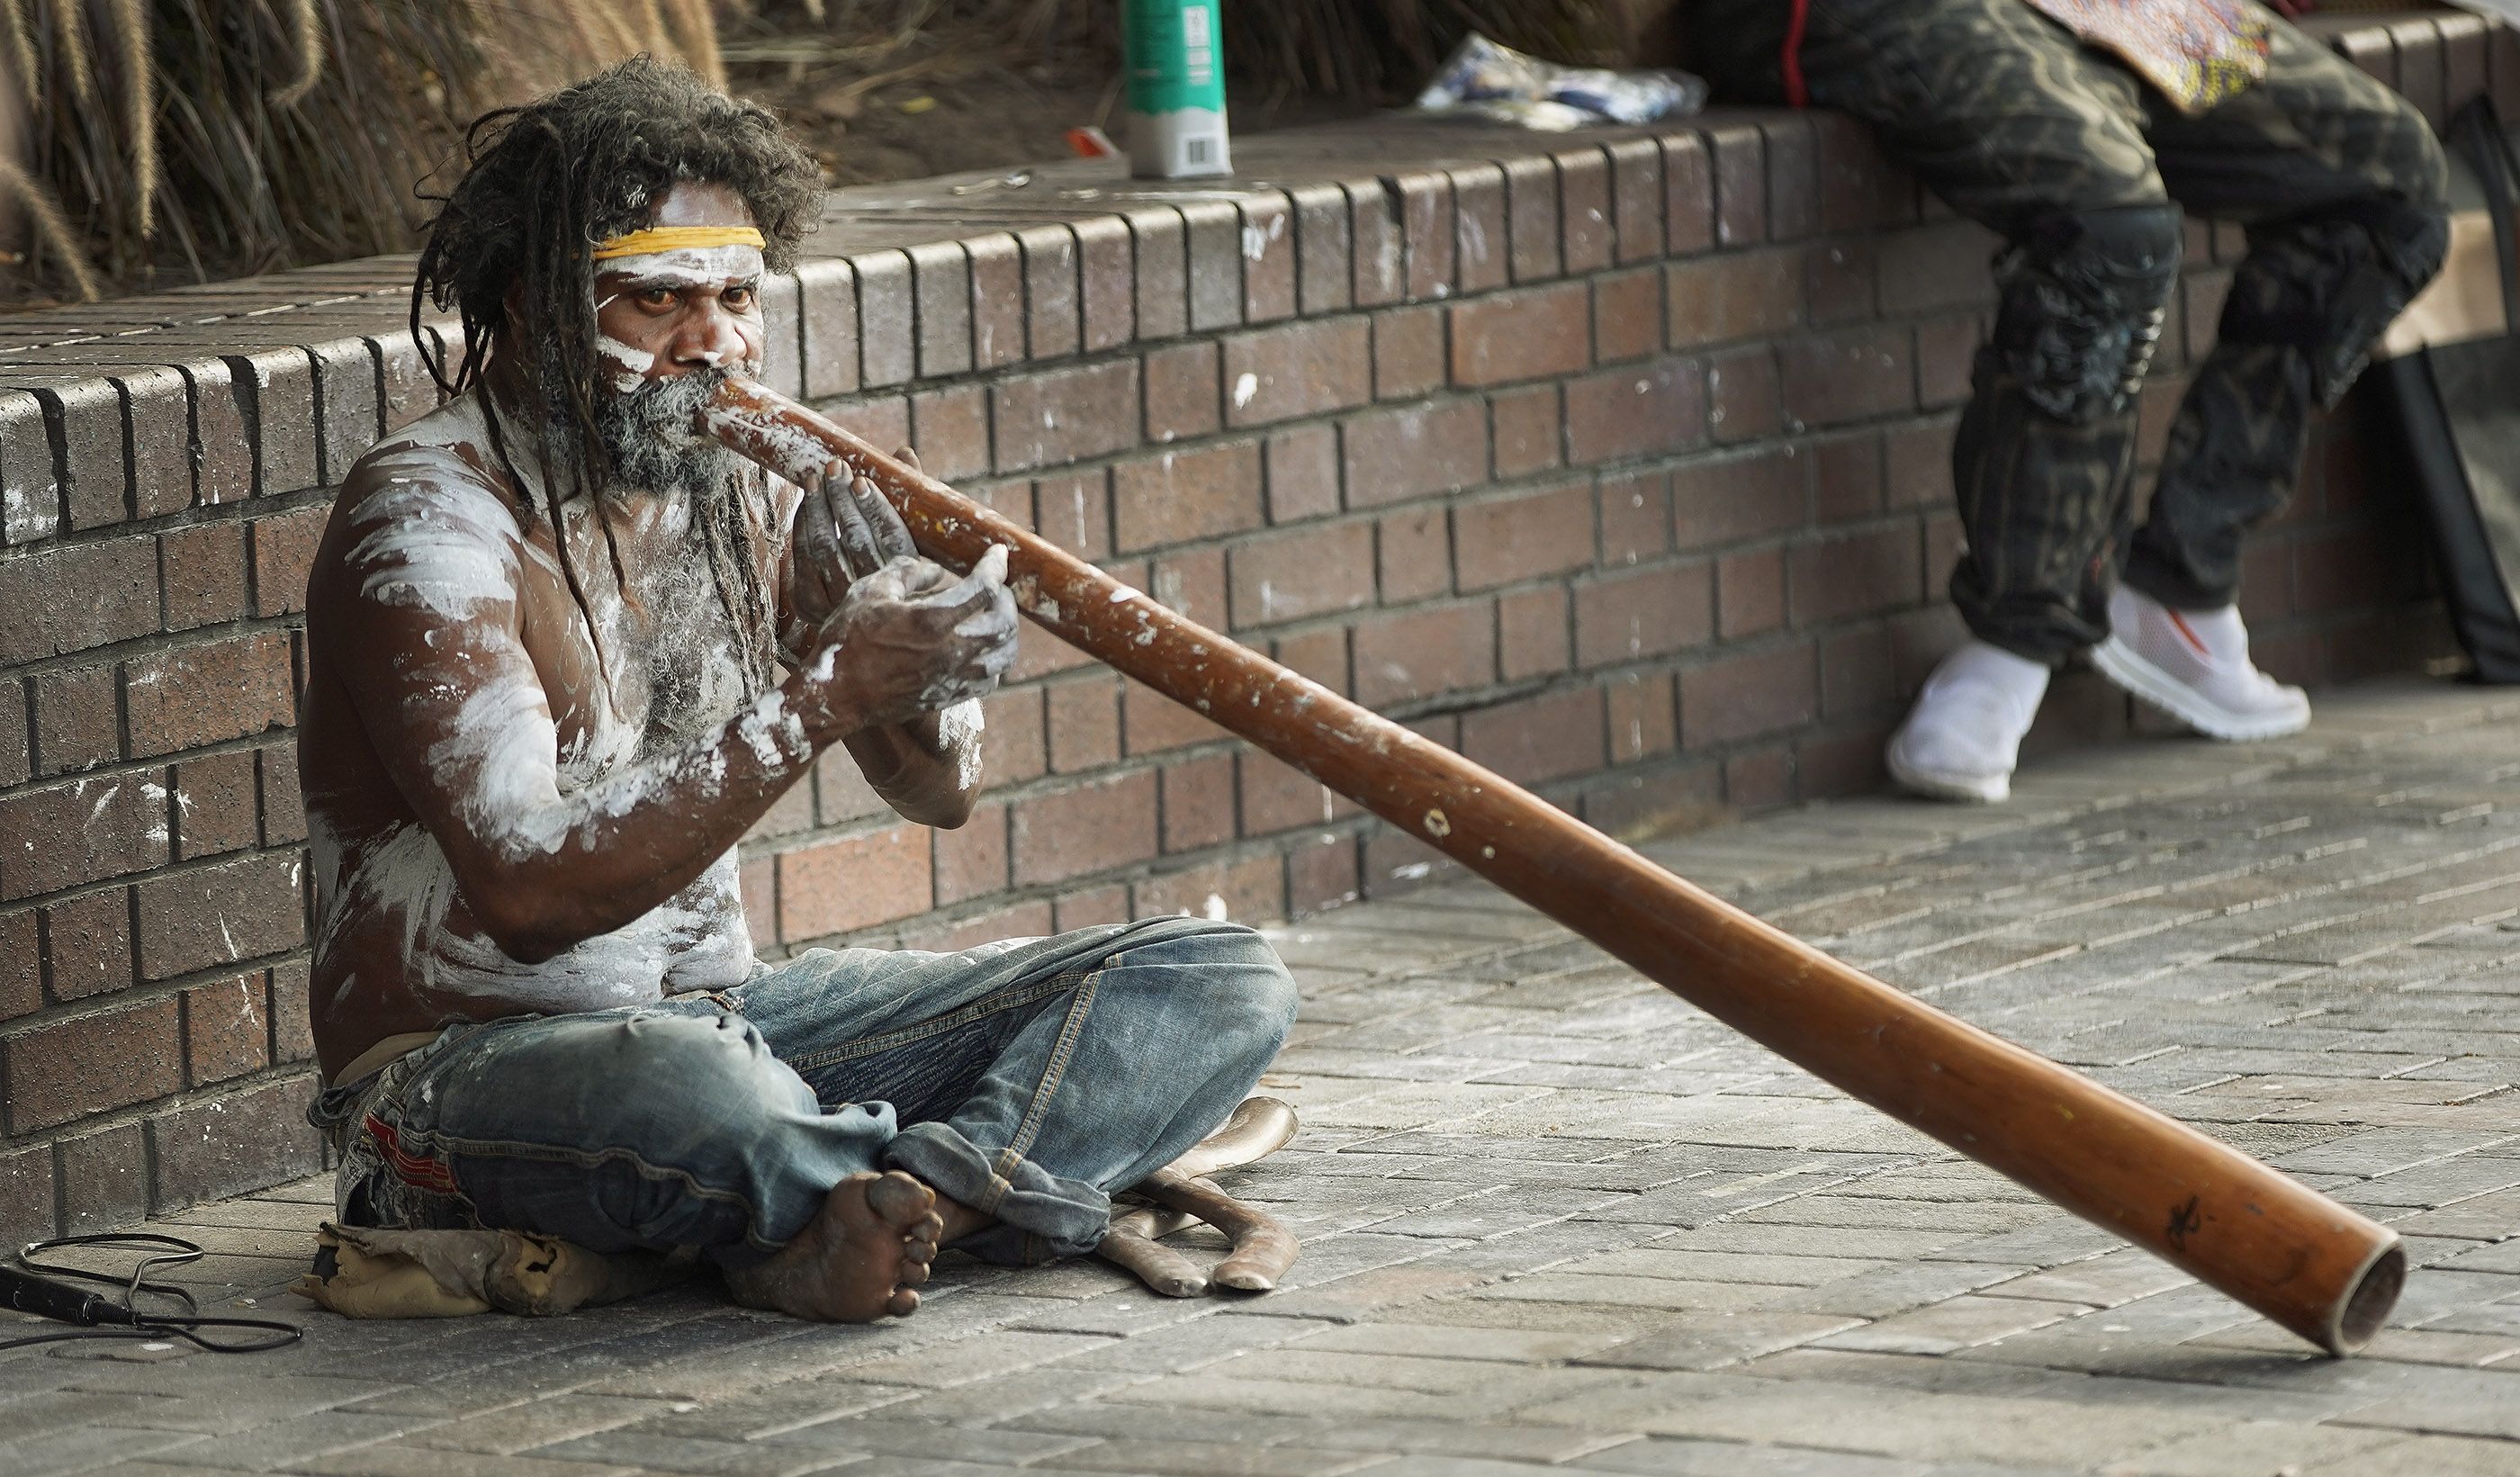 An Aboriginal Australian performs on the didgeridoo on the street on May 18, 2019, in Sydney, Australia. President Russell M. Nelson, with his wife, Sister Wendy Nelson, visited the city on his nine-day, seven-nation Pacific Ministry Tour.